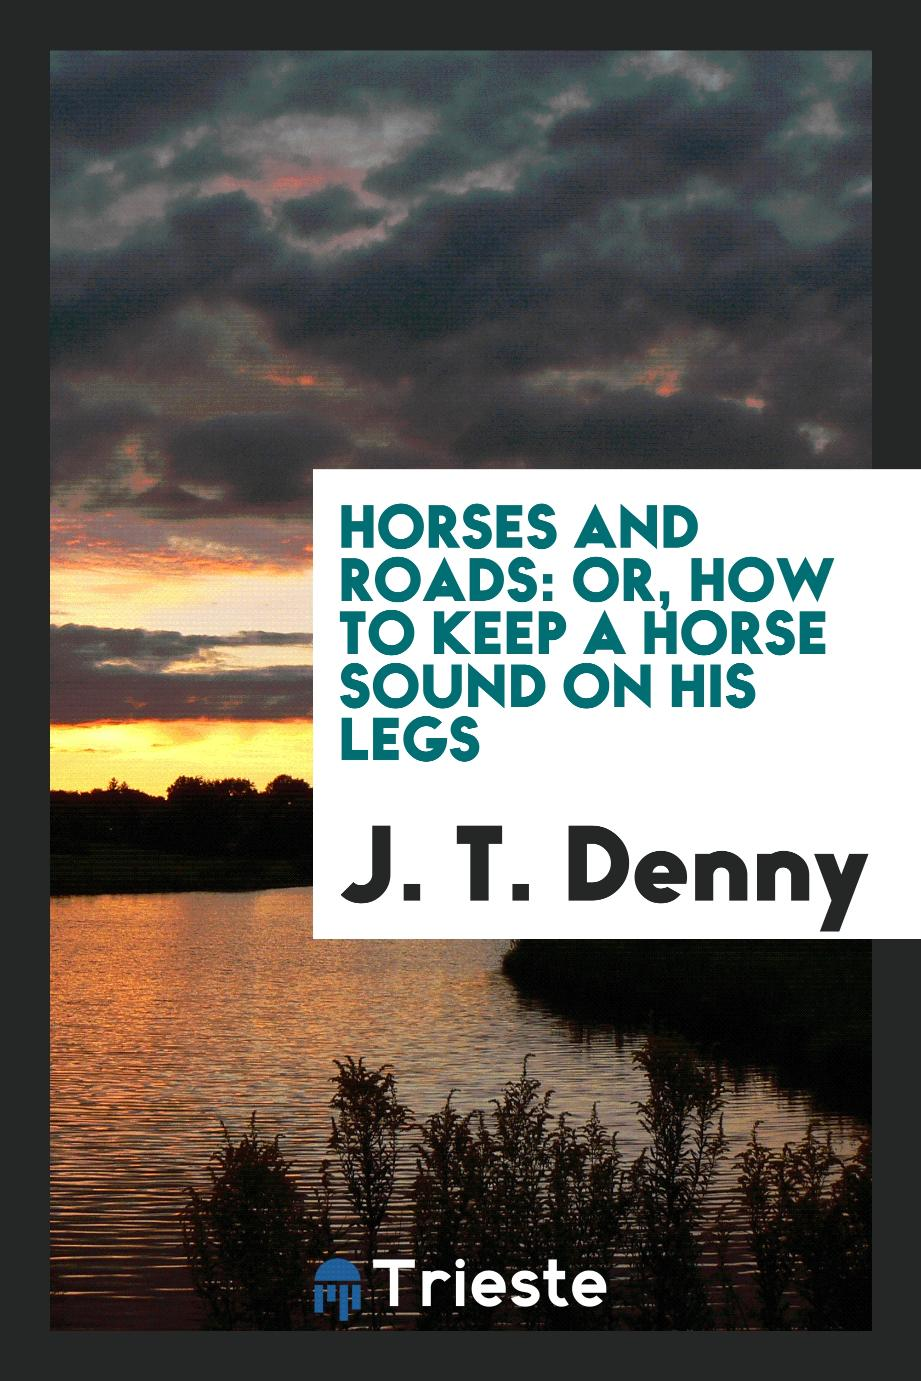 Horses and roads: or, how to keep a horse sound on his legs